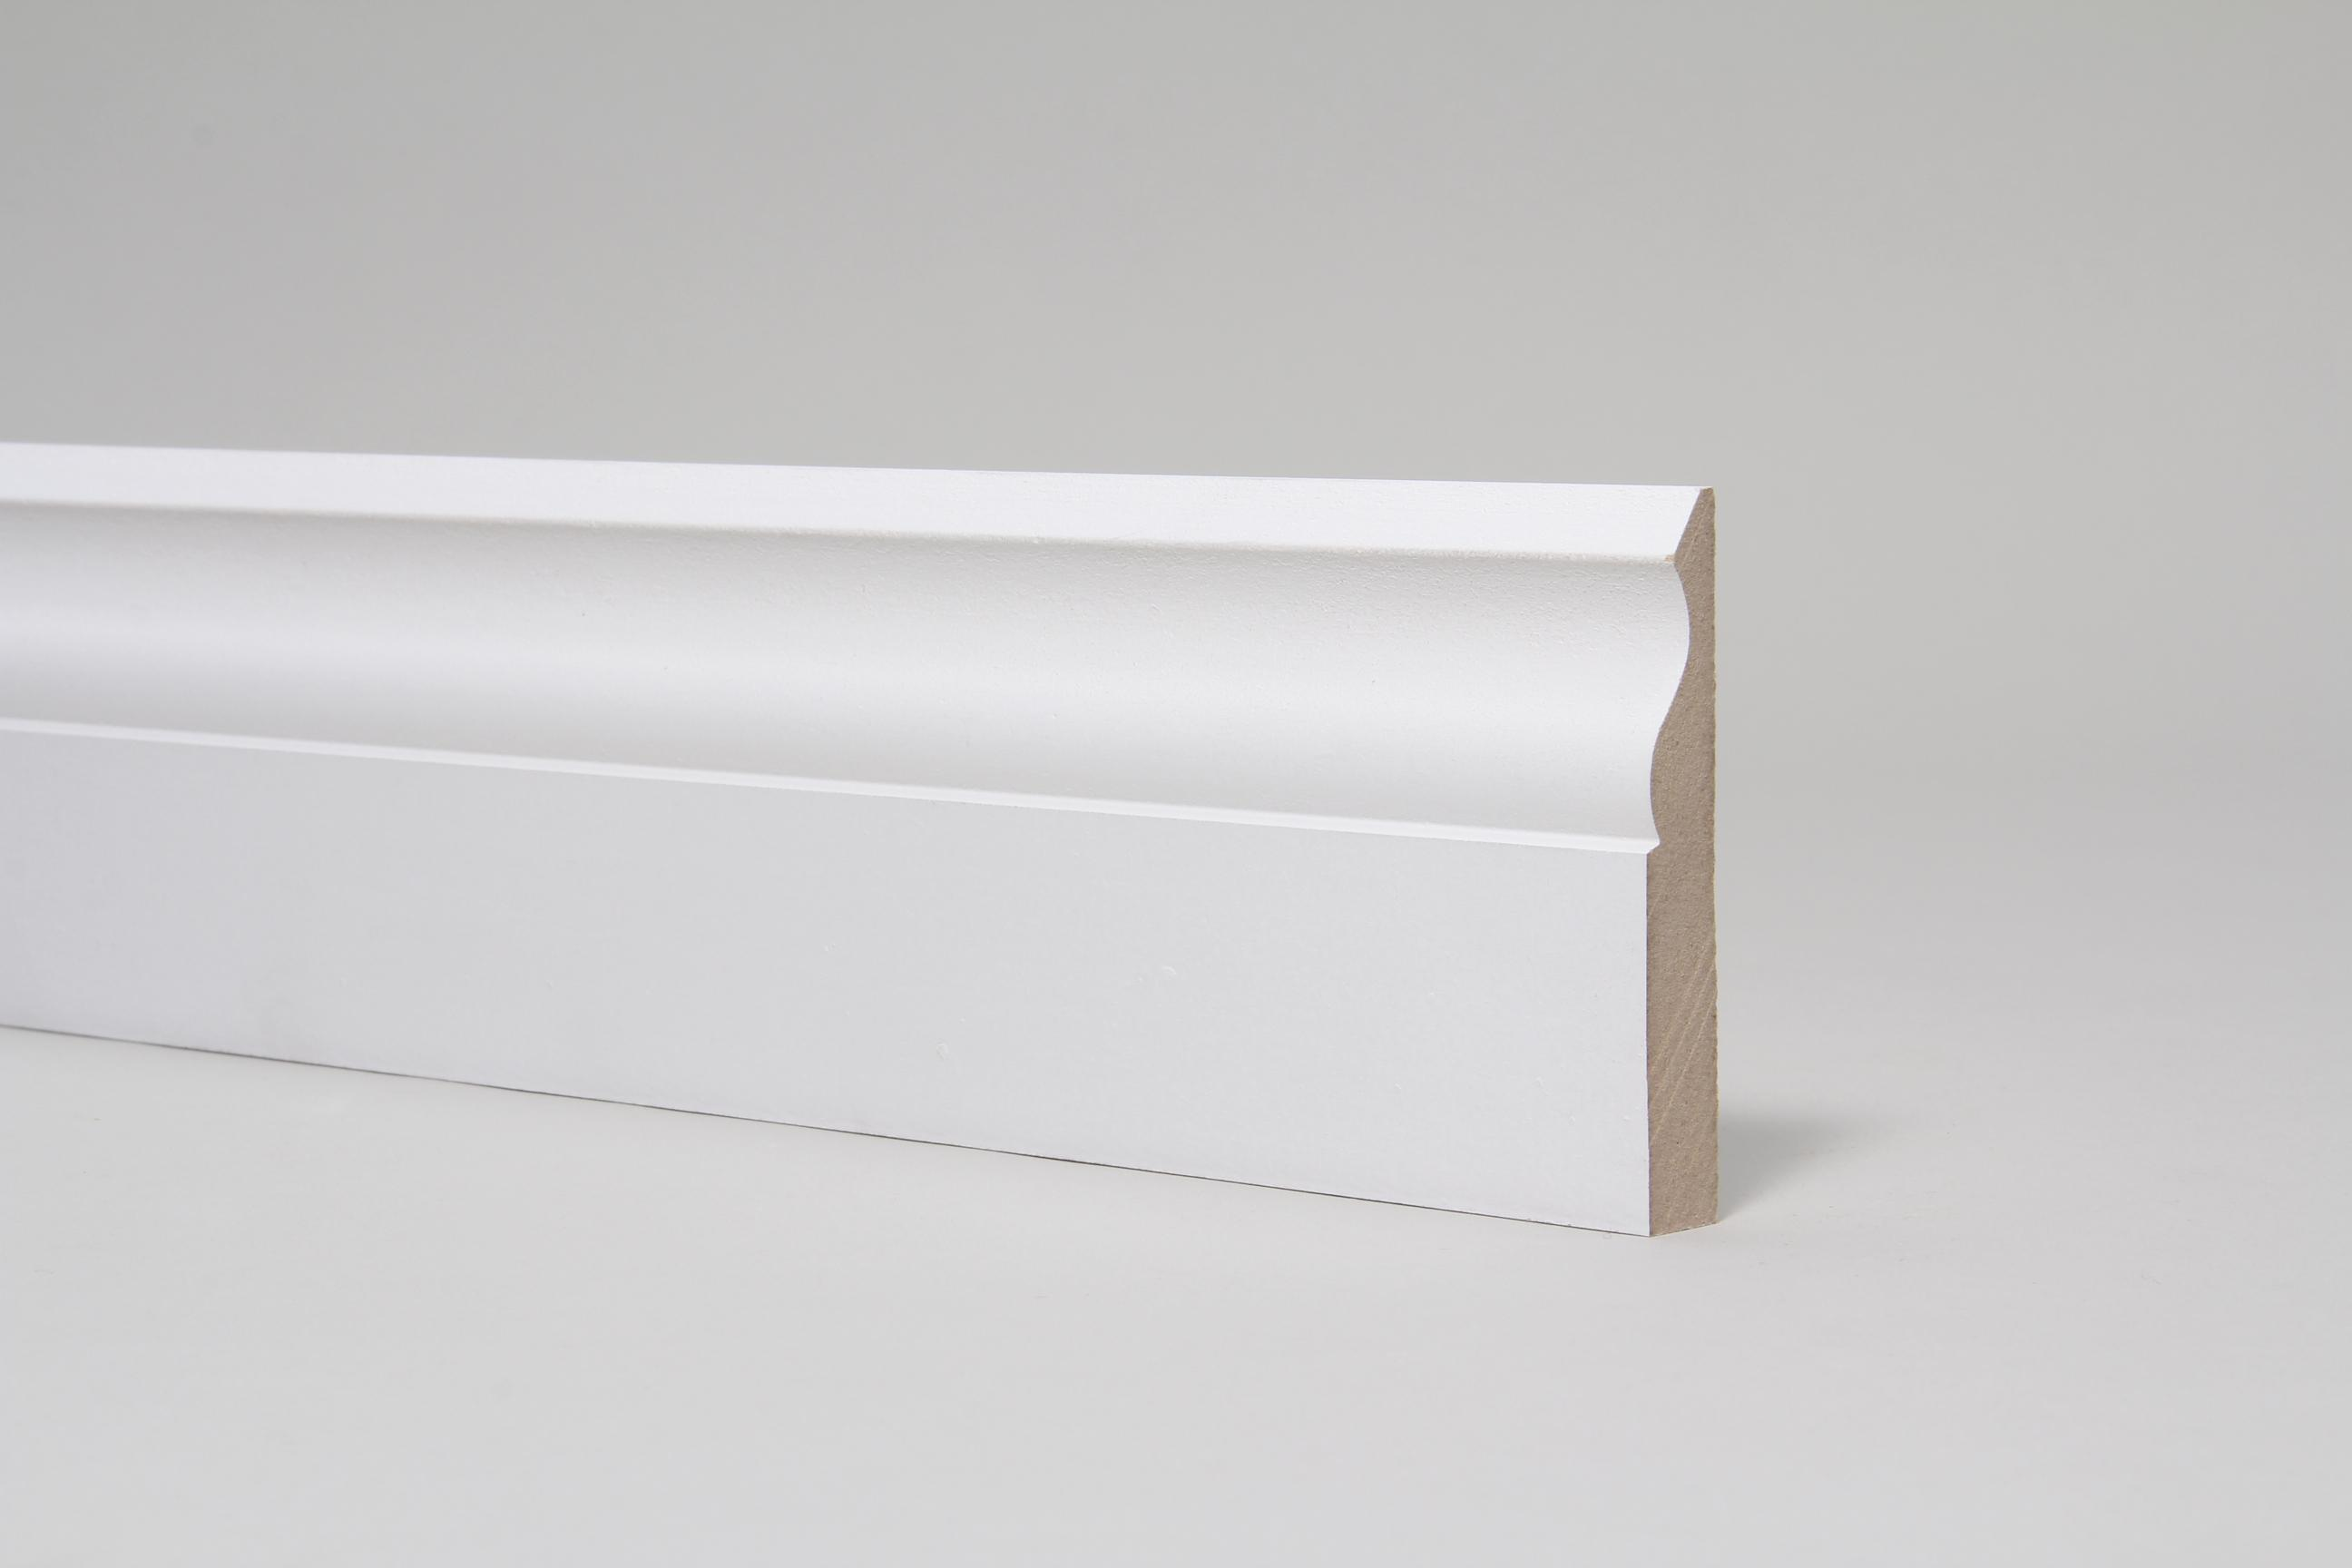 Ogee  15mm x 94mm x 4.4 Mtr Primed